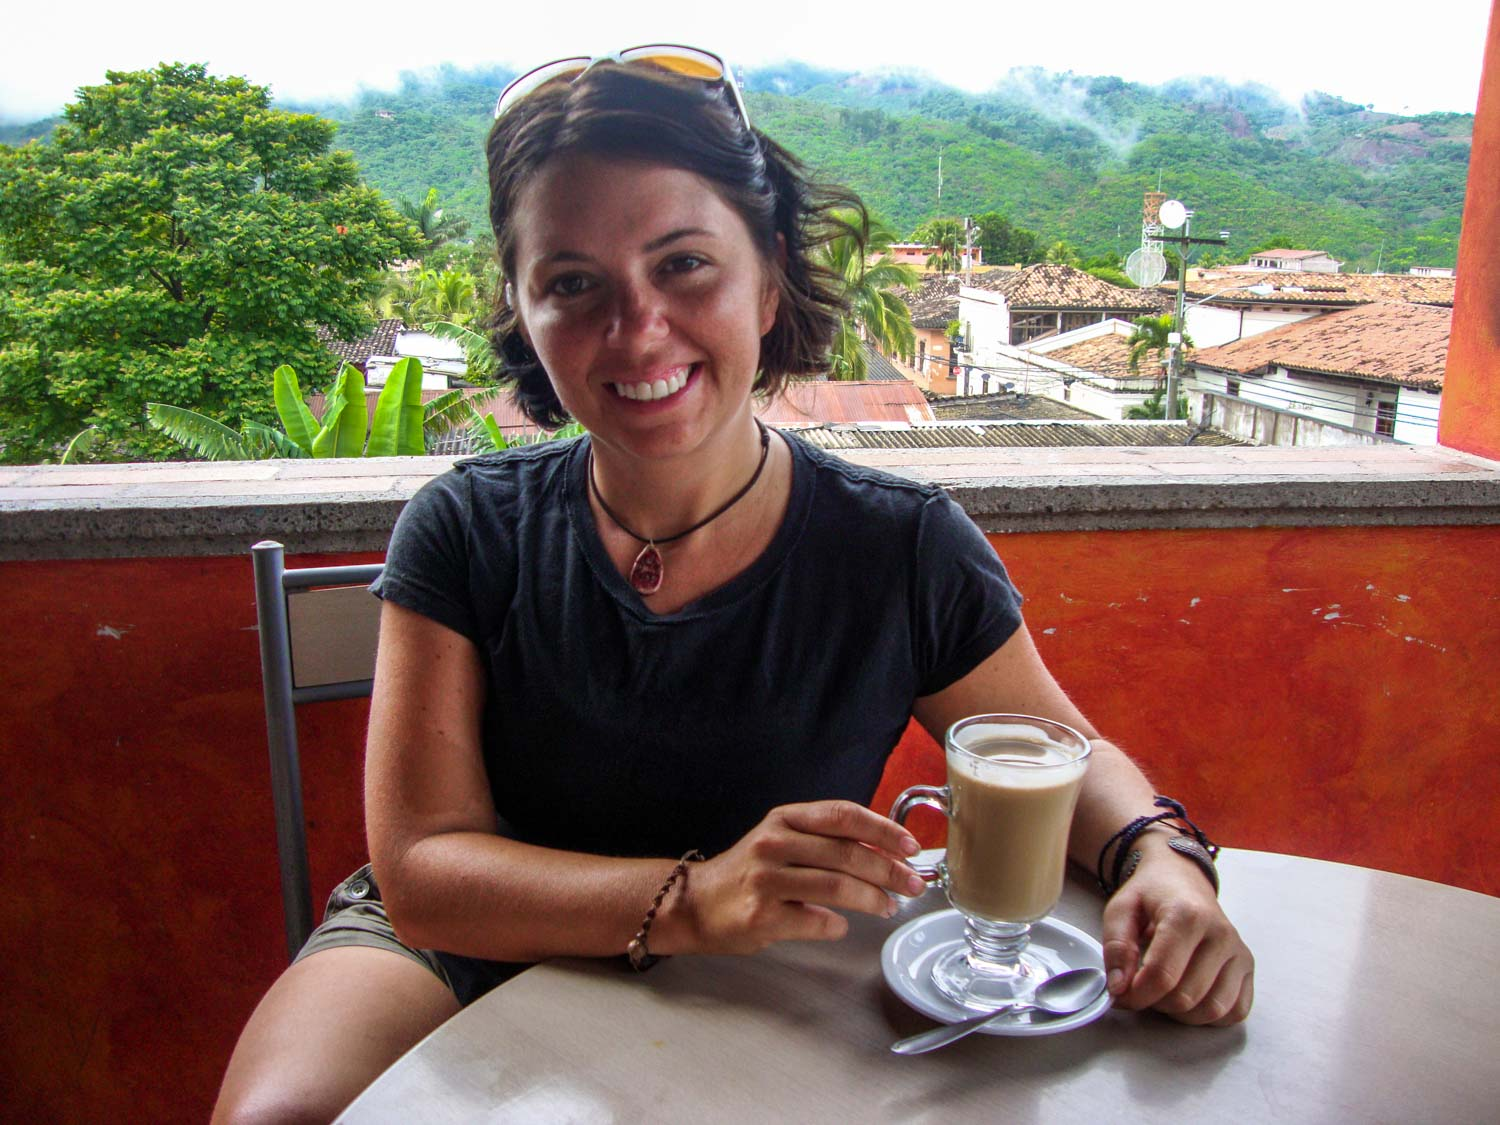 Ayngelina at a table with coffee, views of Copan Honduras in the background